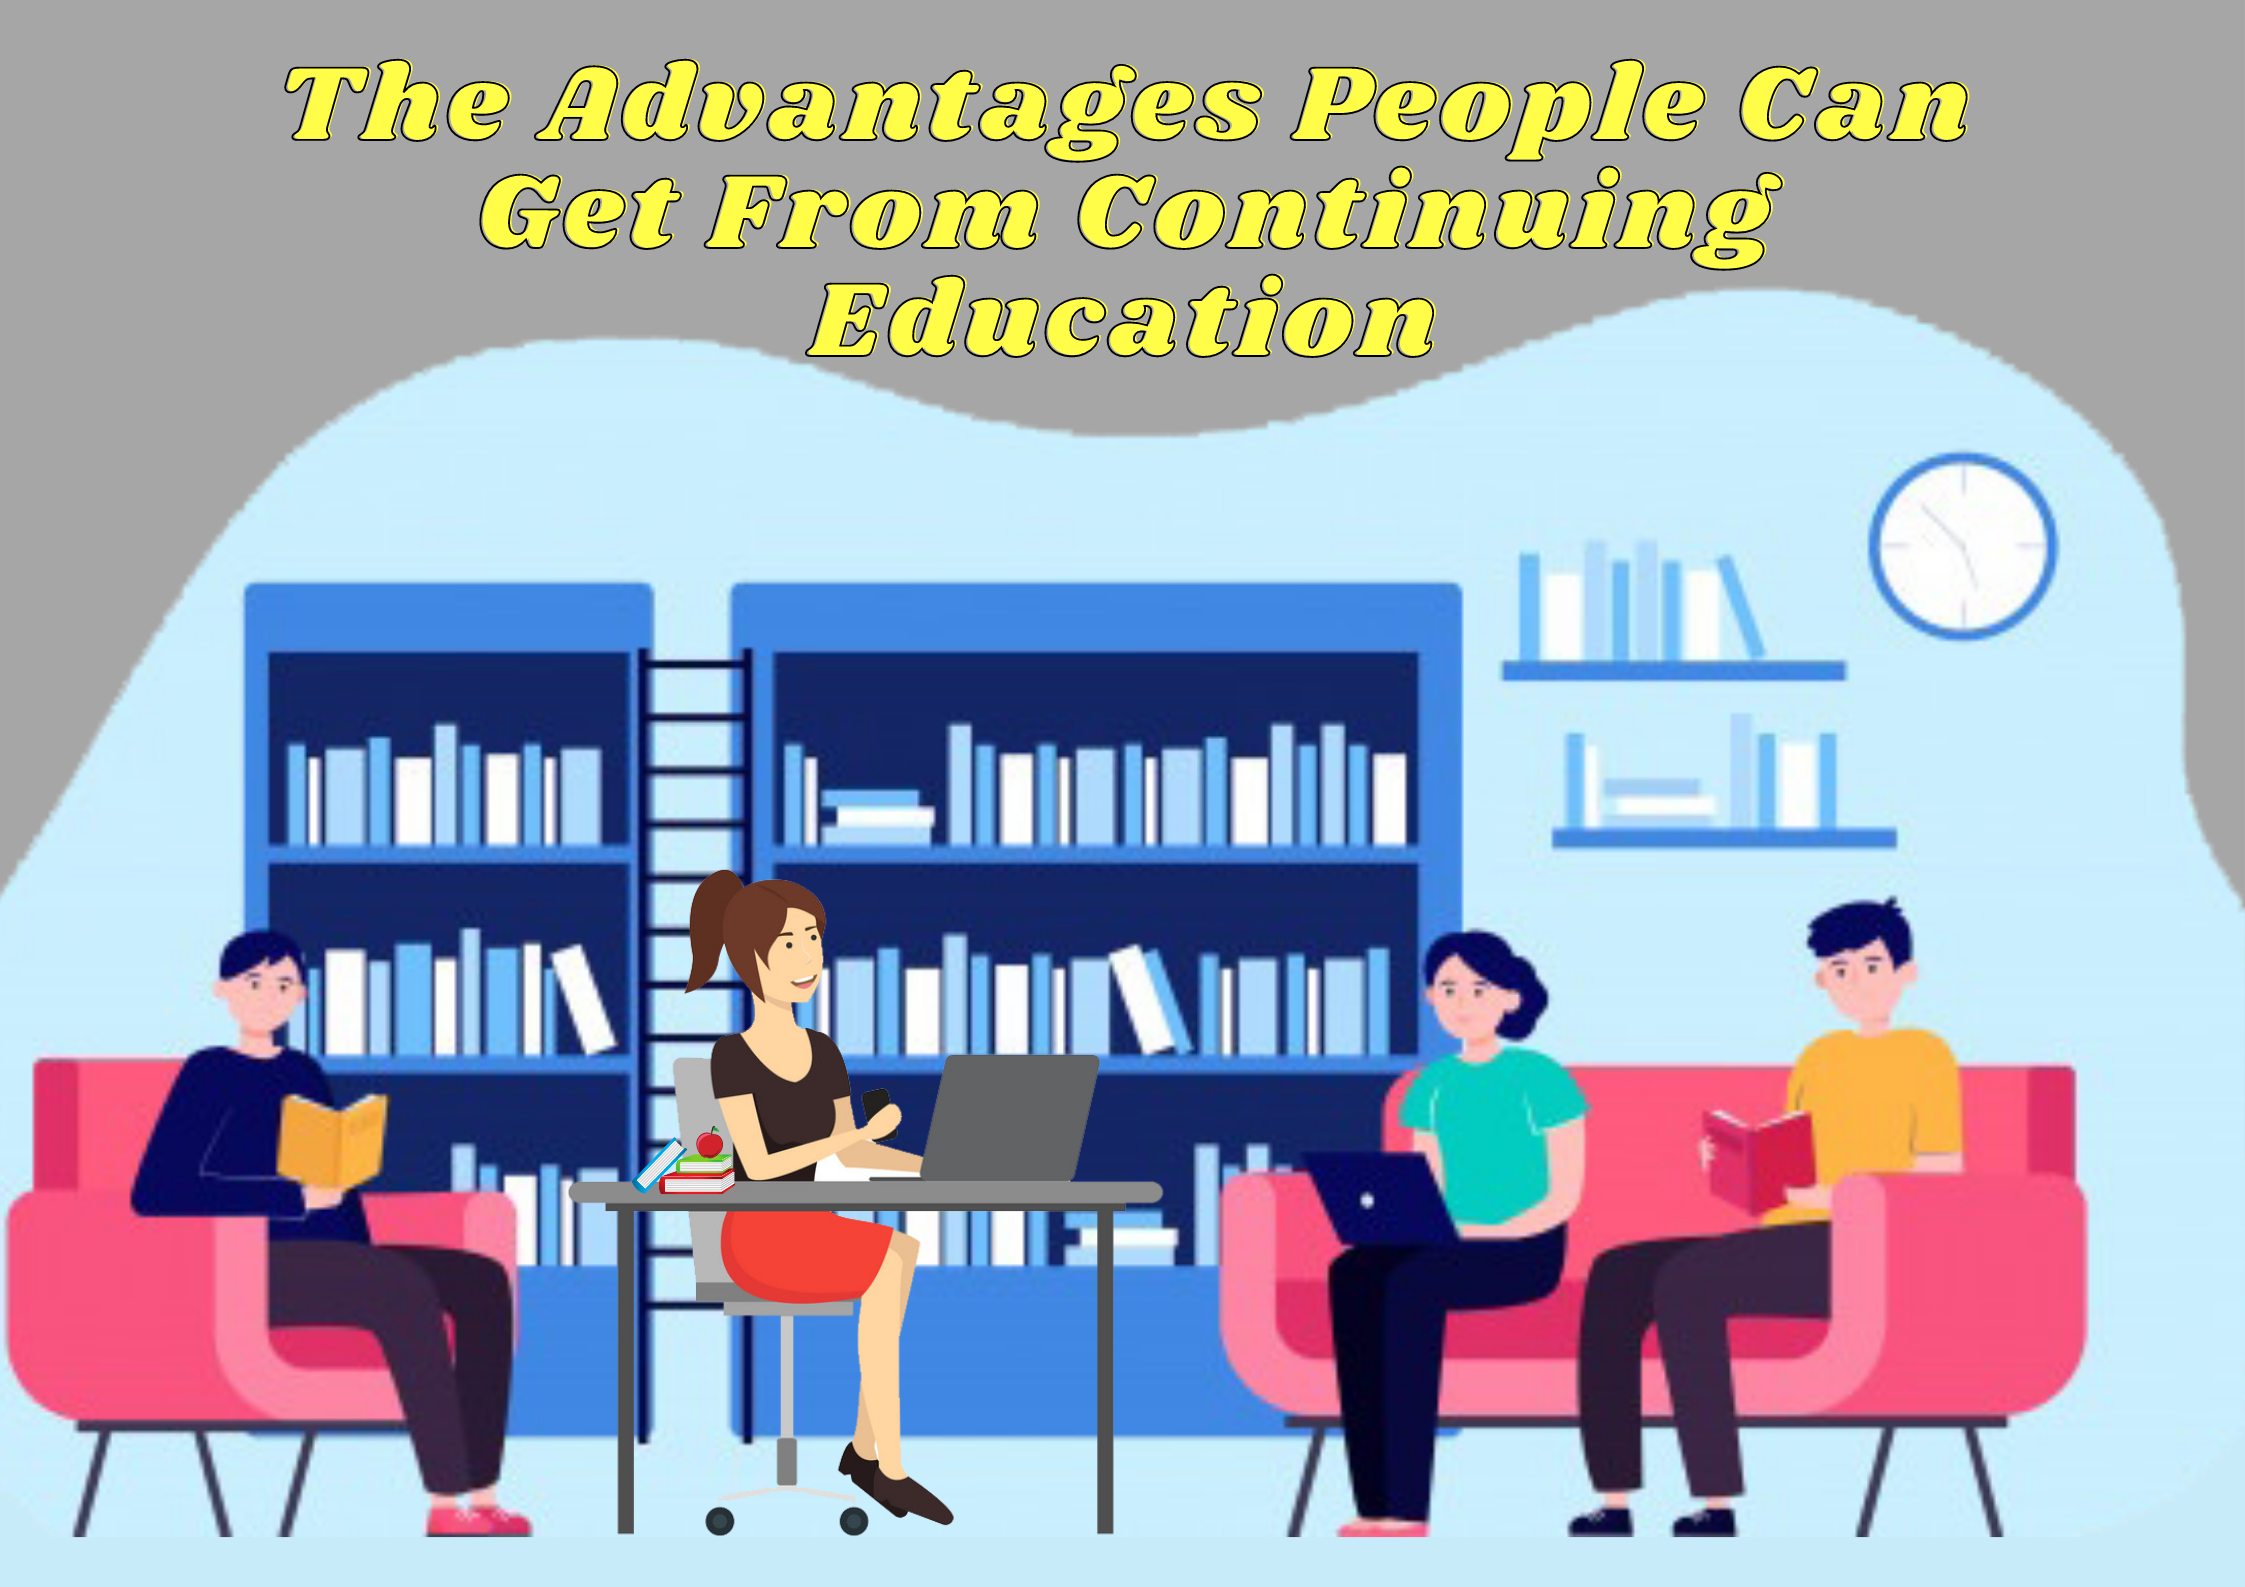 The-Advantages-People-Can-Get-From-Continuing-Education